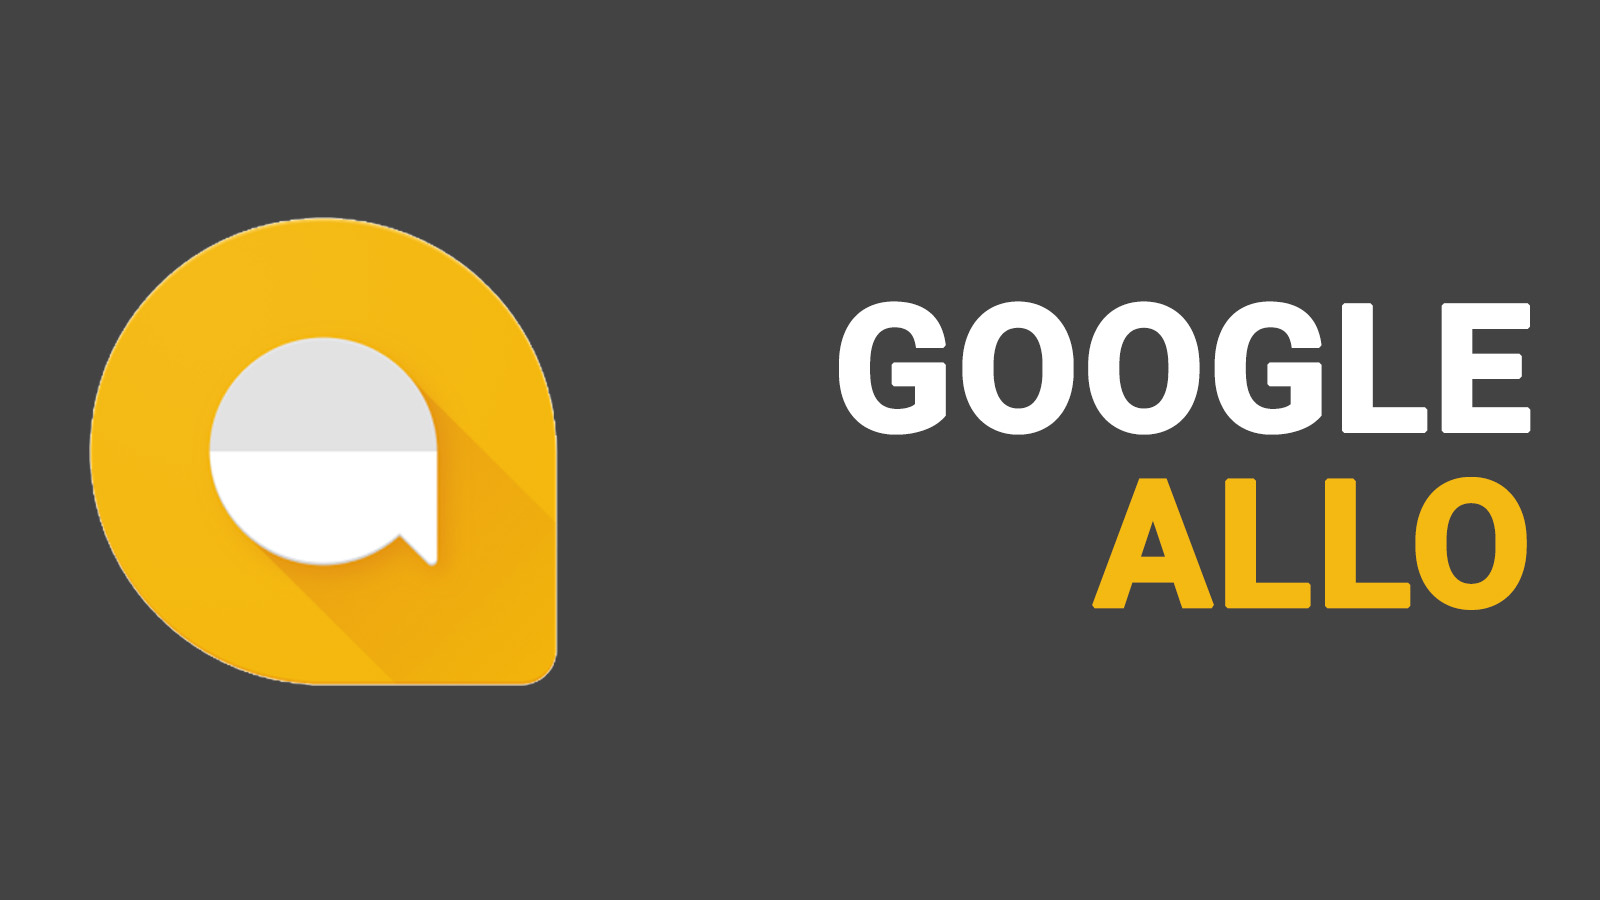 Google Allo is back with a bang